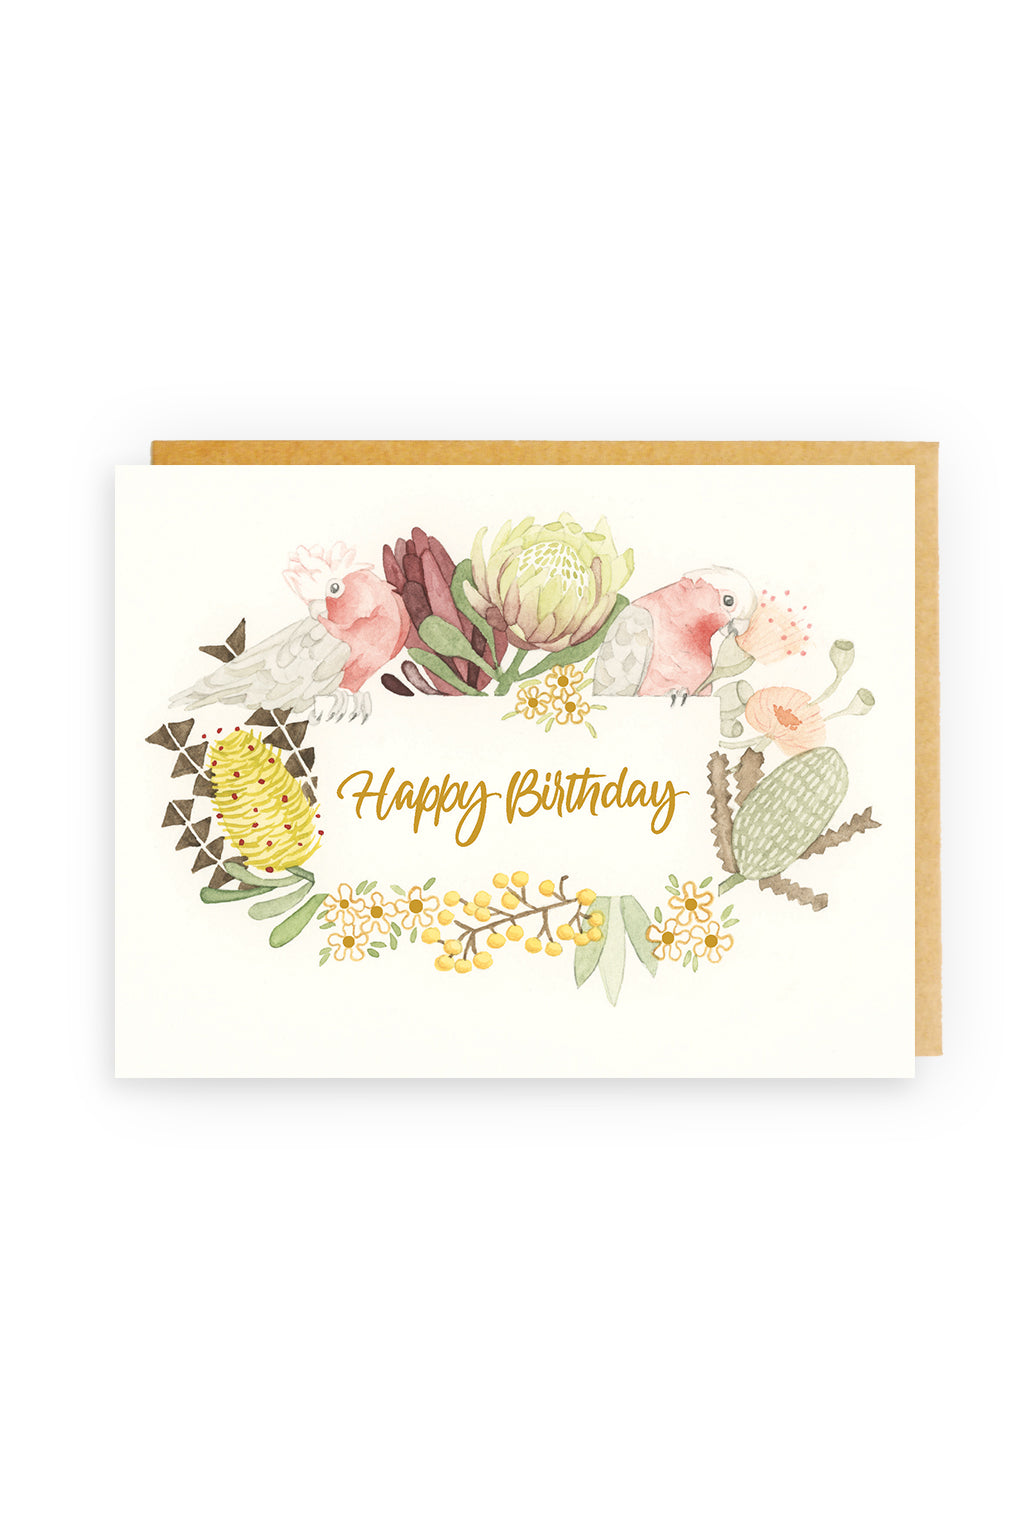 Squirrel Design Studio- Happy Birthday, Beautiful GOLD FOIL  - Greeting Card-Mott and Mulberry